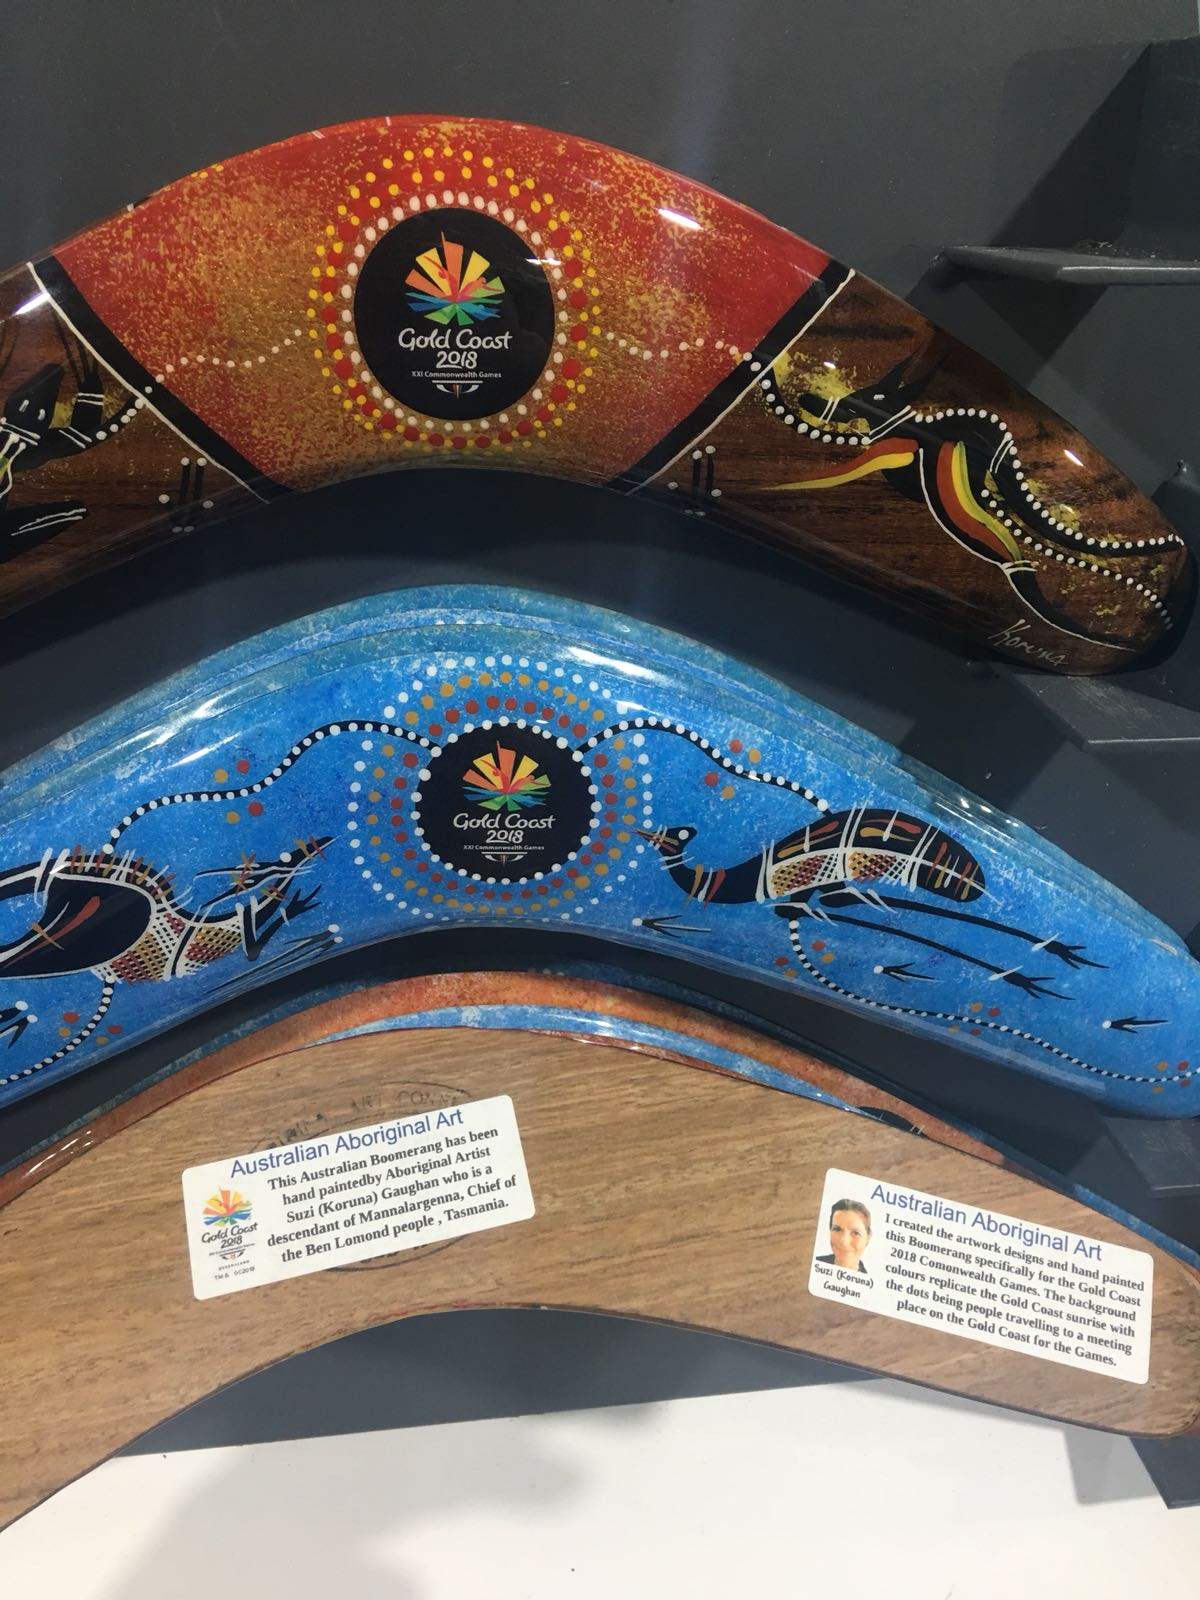 This Australian boomerang has been hand painted by Aboriginal artist Suzi (Koruna) Gaughan who is a descendant of Mannalargenna, Chief of the Ben Lomond people, Tasmania.